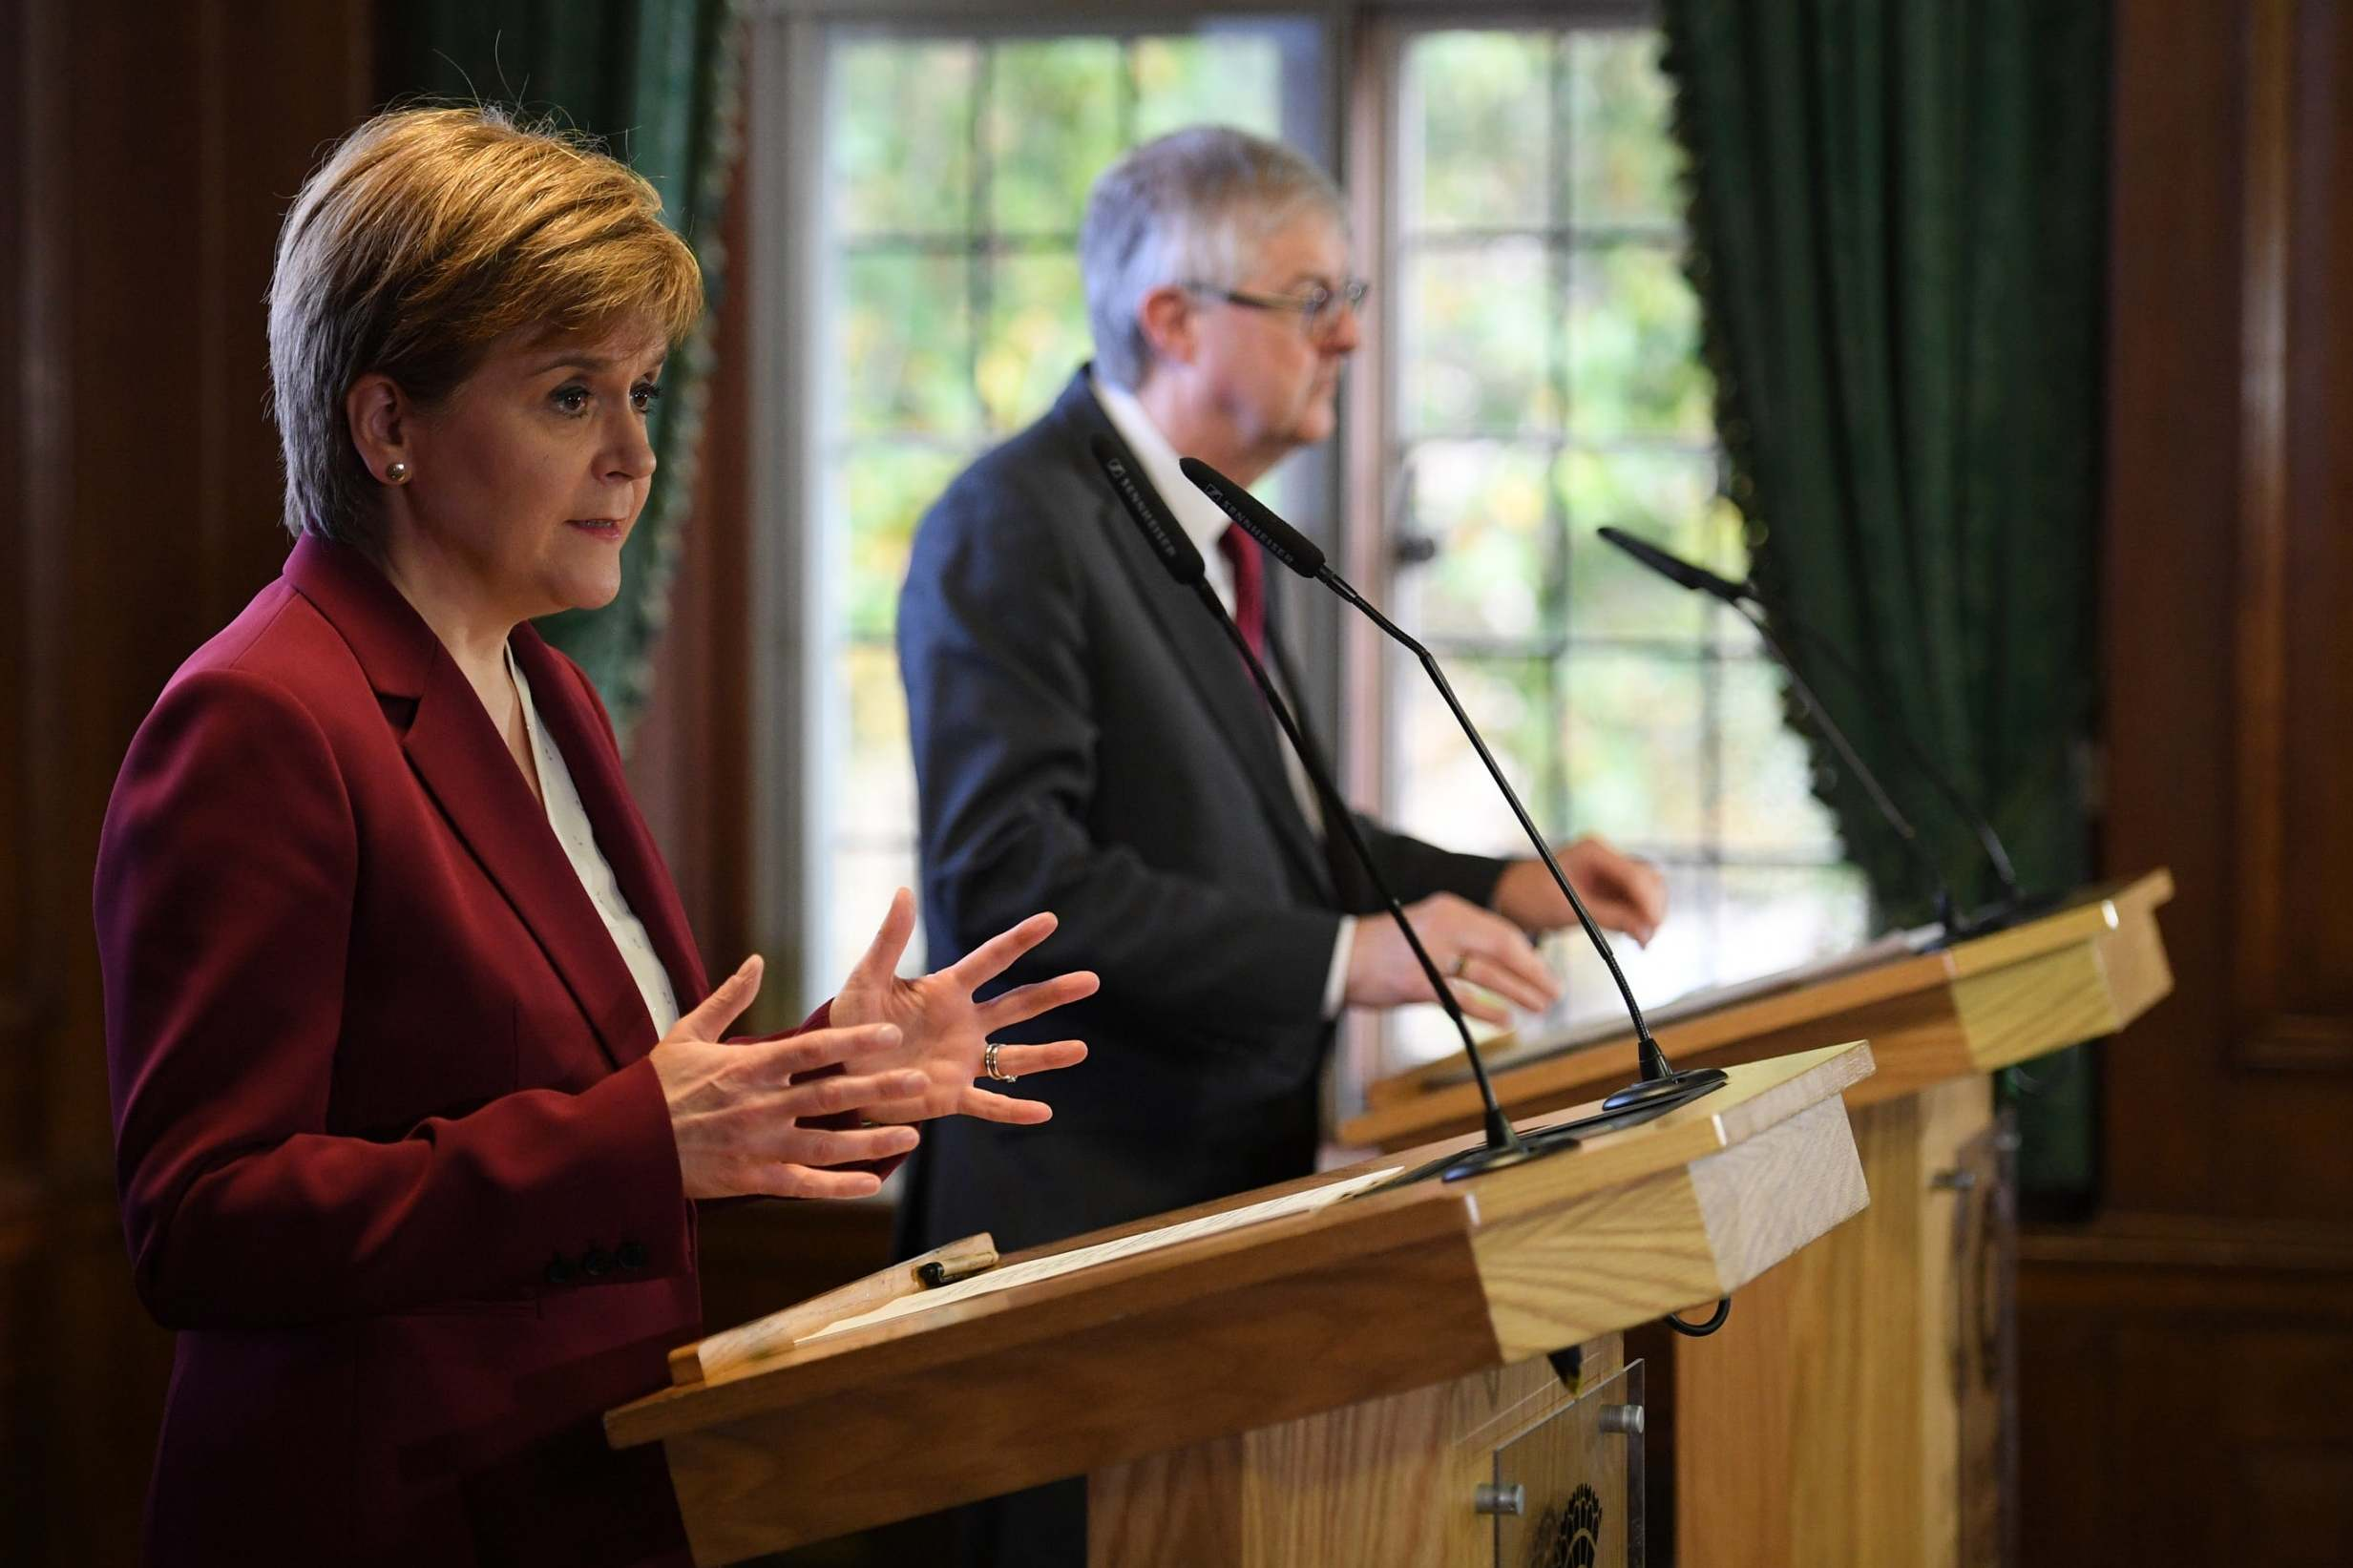 Nicola Sturgeon hints SNP could vote with Boris Johnson for a general election 'before Christmas'